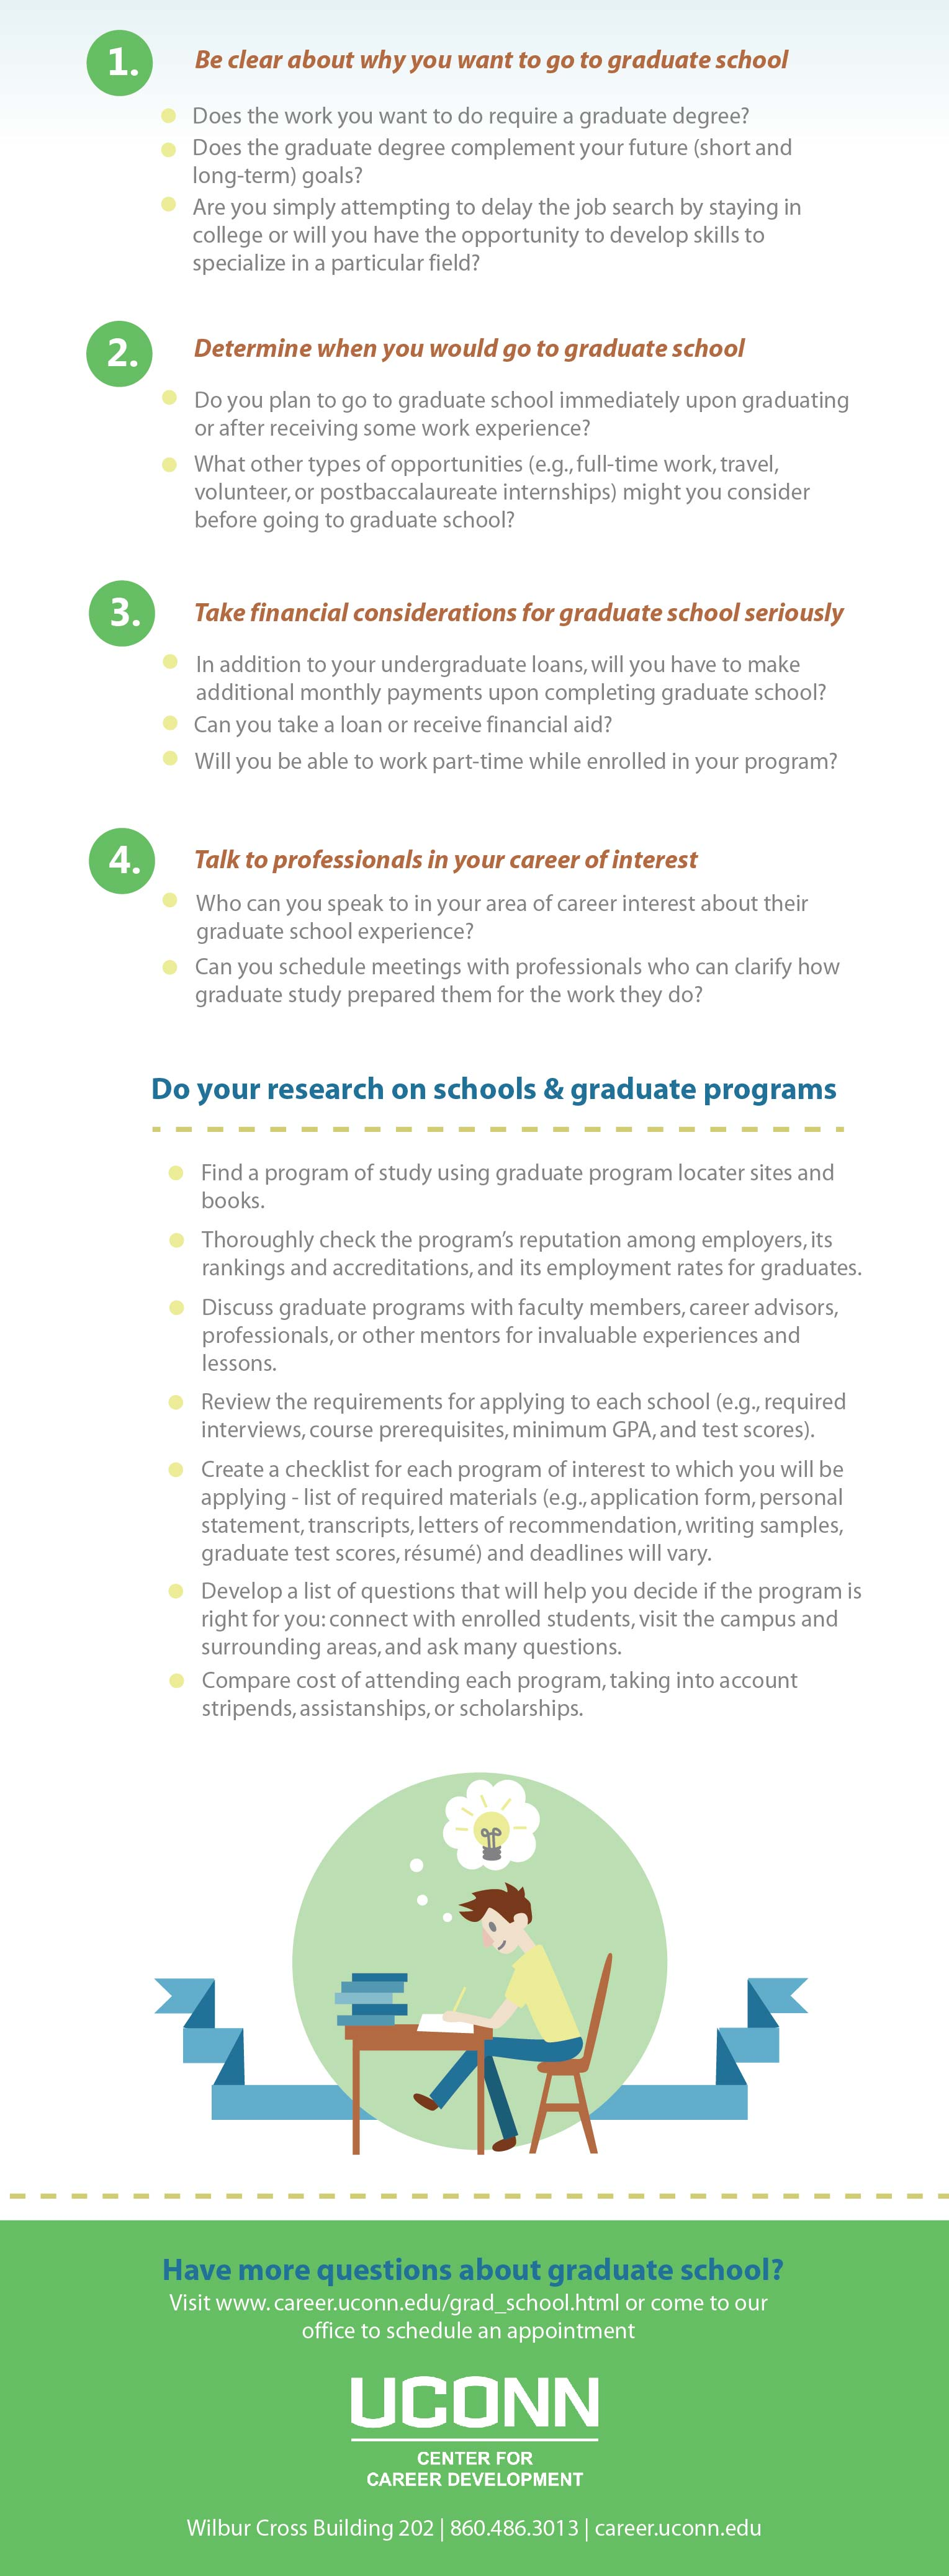 how to decide if graduate school is right for you uconn center how to decide if graduate school is right for you uconn center for career development